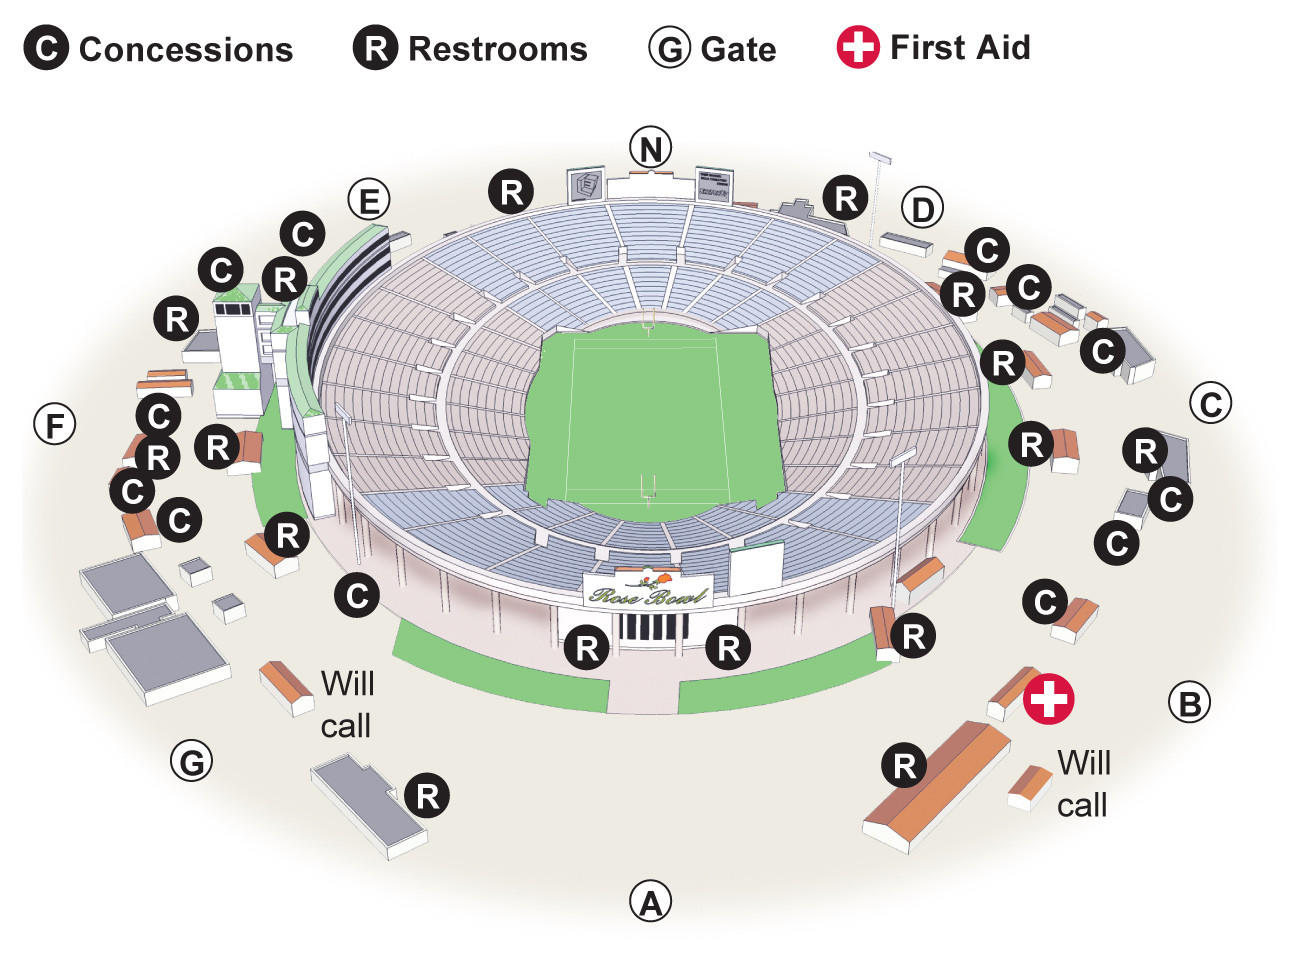 Rose Bowl Parking Map Rose Bowl game information   Los Angeles Times Rose Bowl Parking Map